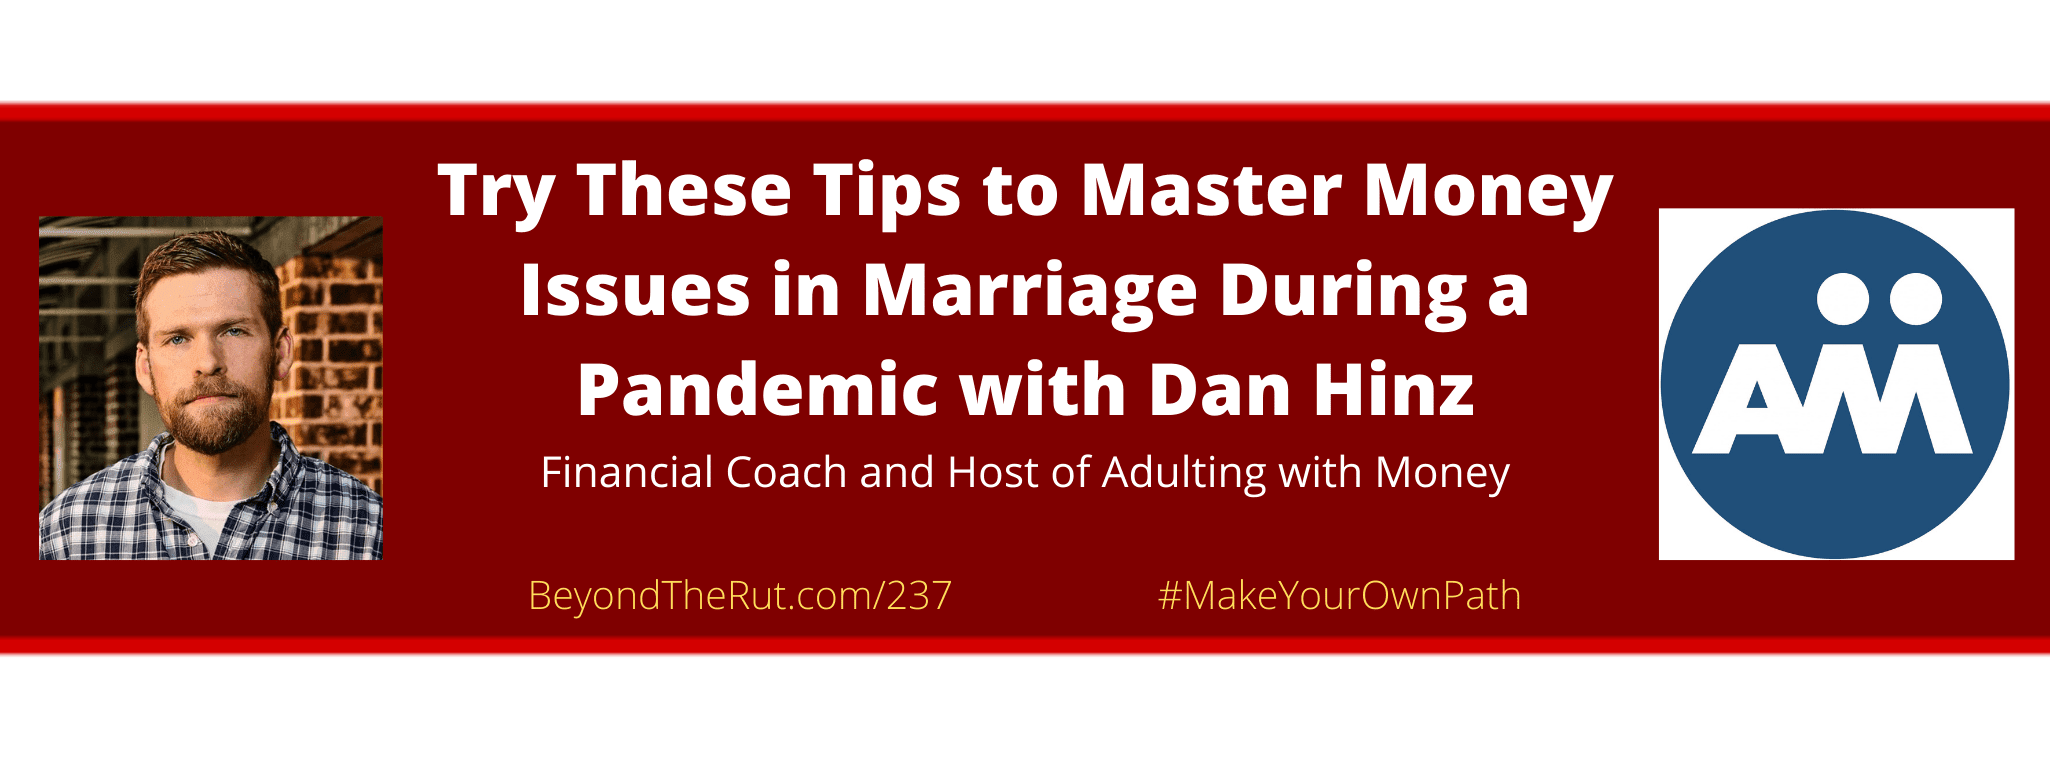 money issues with marriage dan hinz